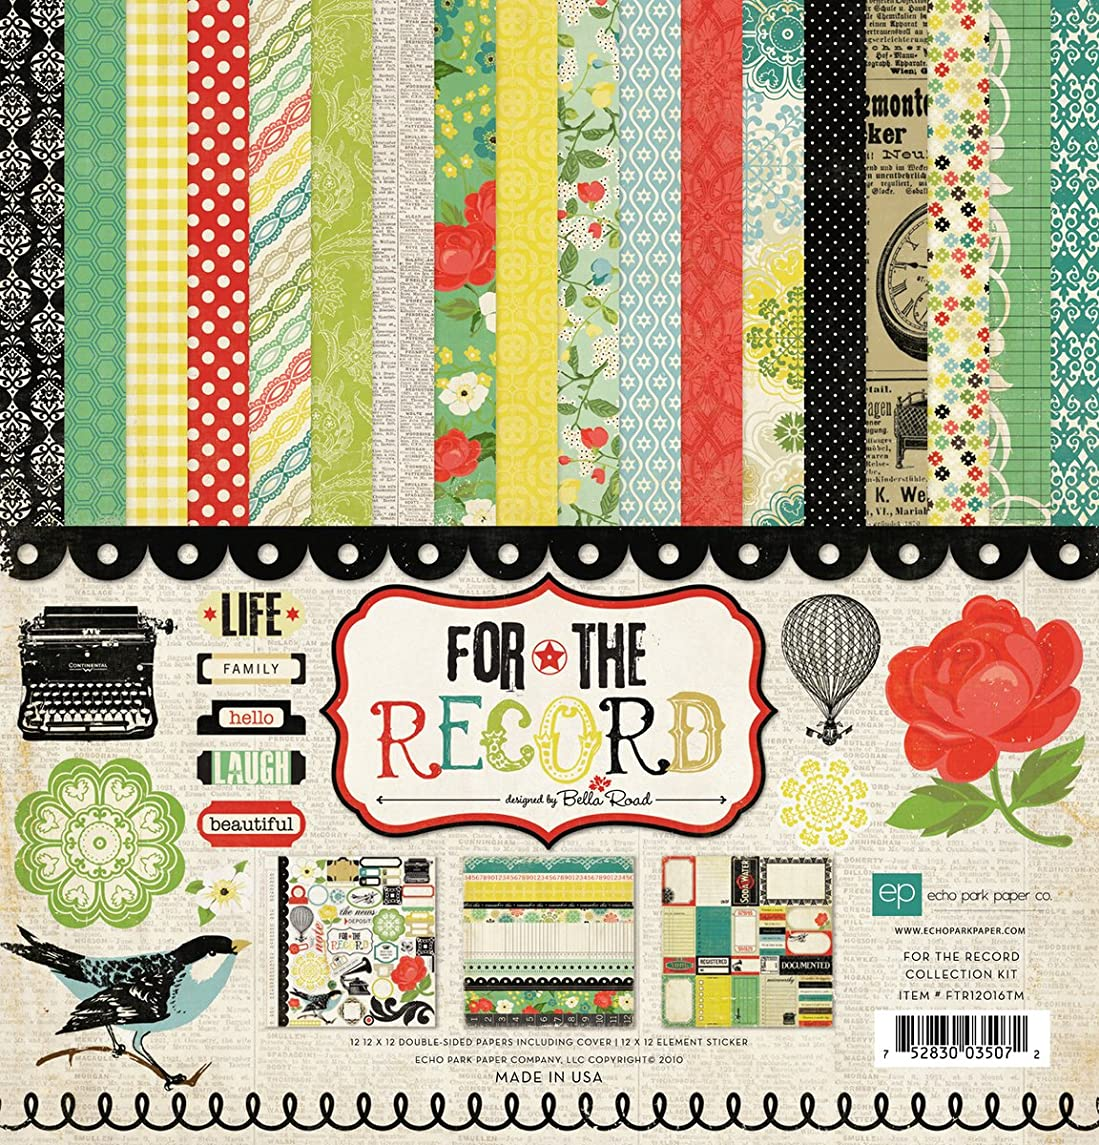 Echo Park Paper 12x12 Collection Kit - for The Record